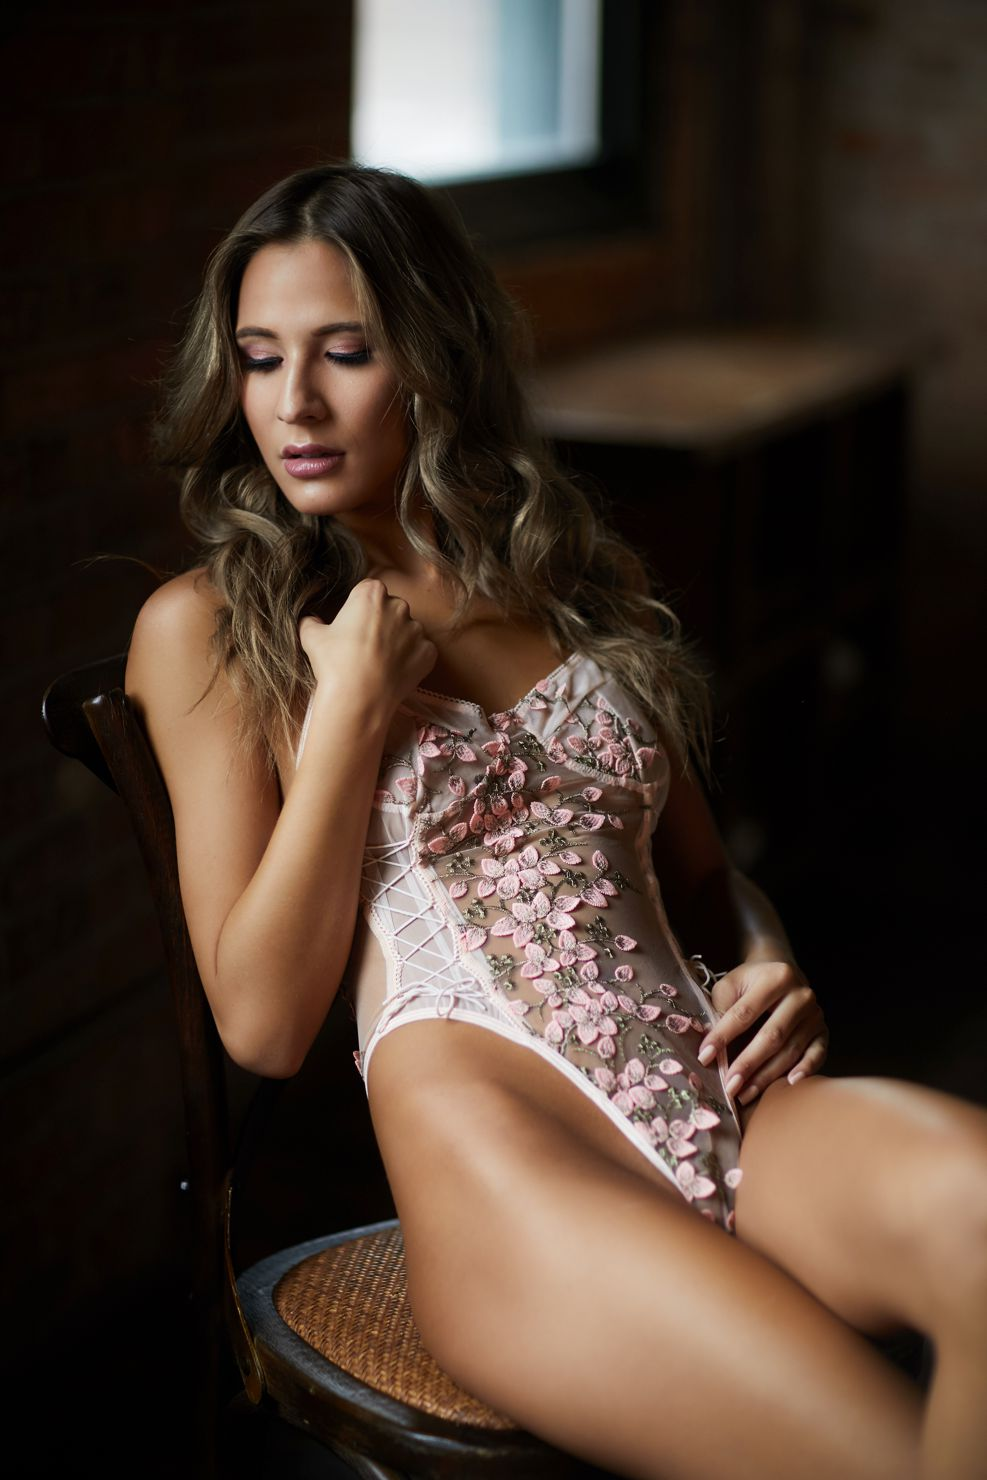 tasteful elegant classy edgy sexy boudoir - Top 3 Reasons Why You Should Have a Boudoir Session.